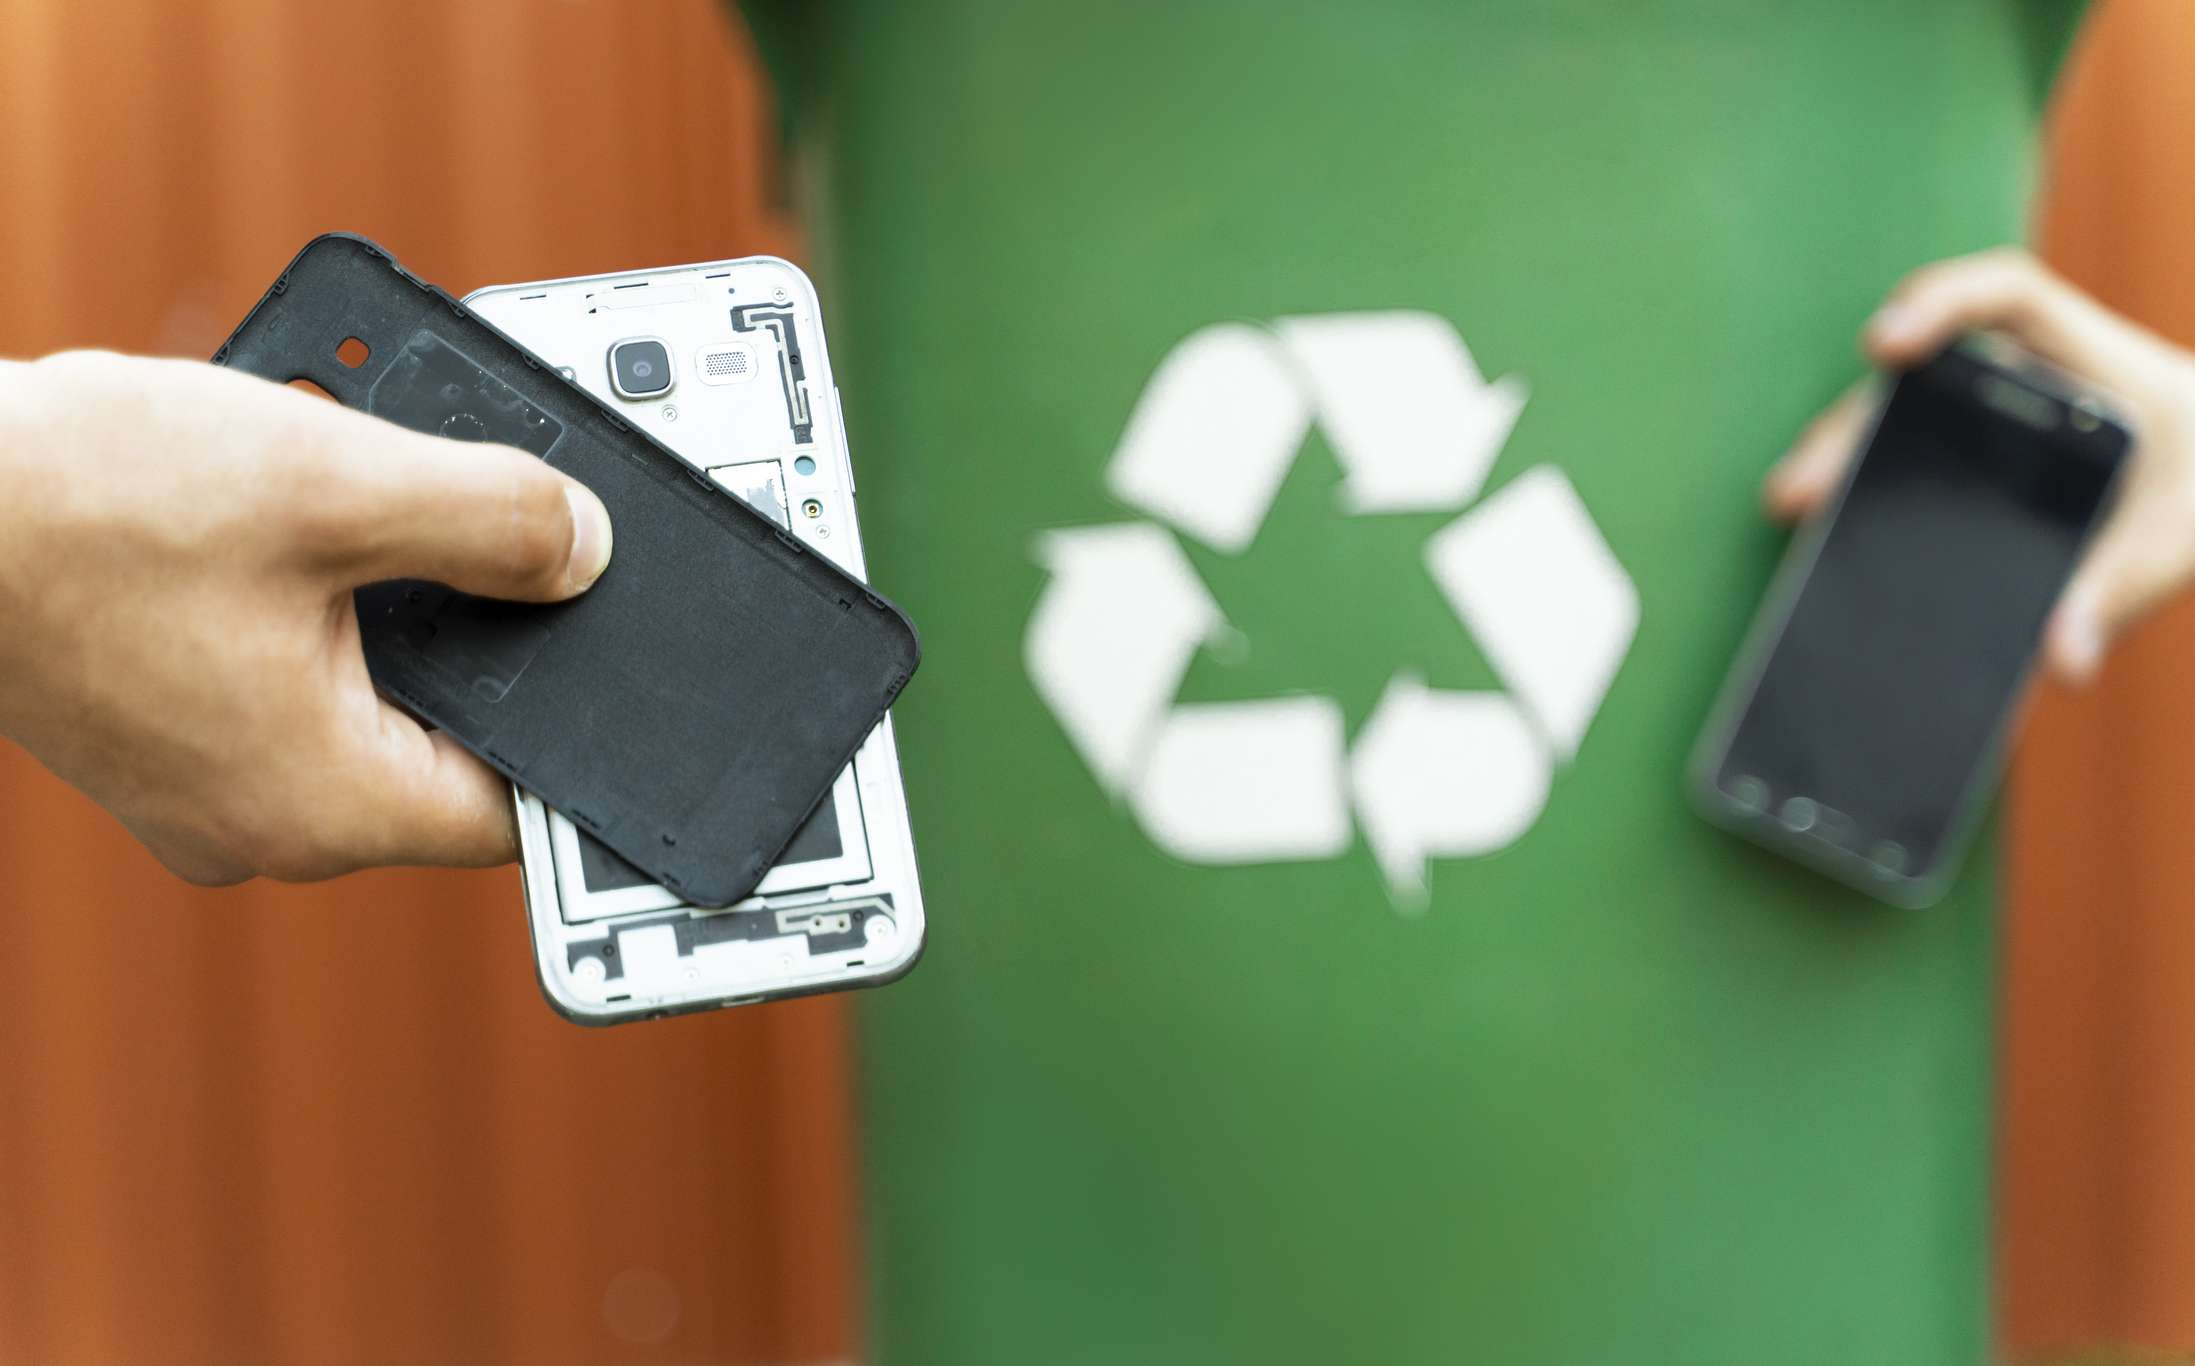 An old cell phone being brought to a green recycling bin.